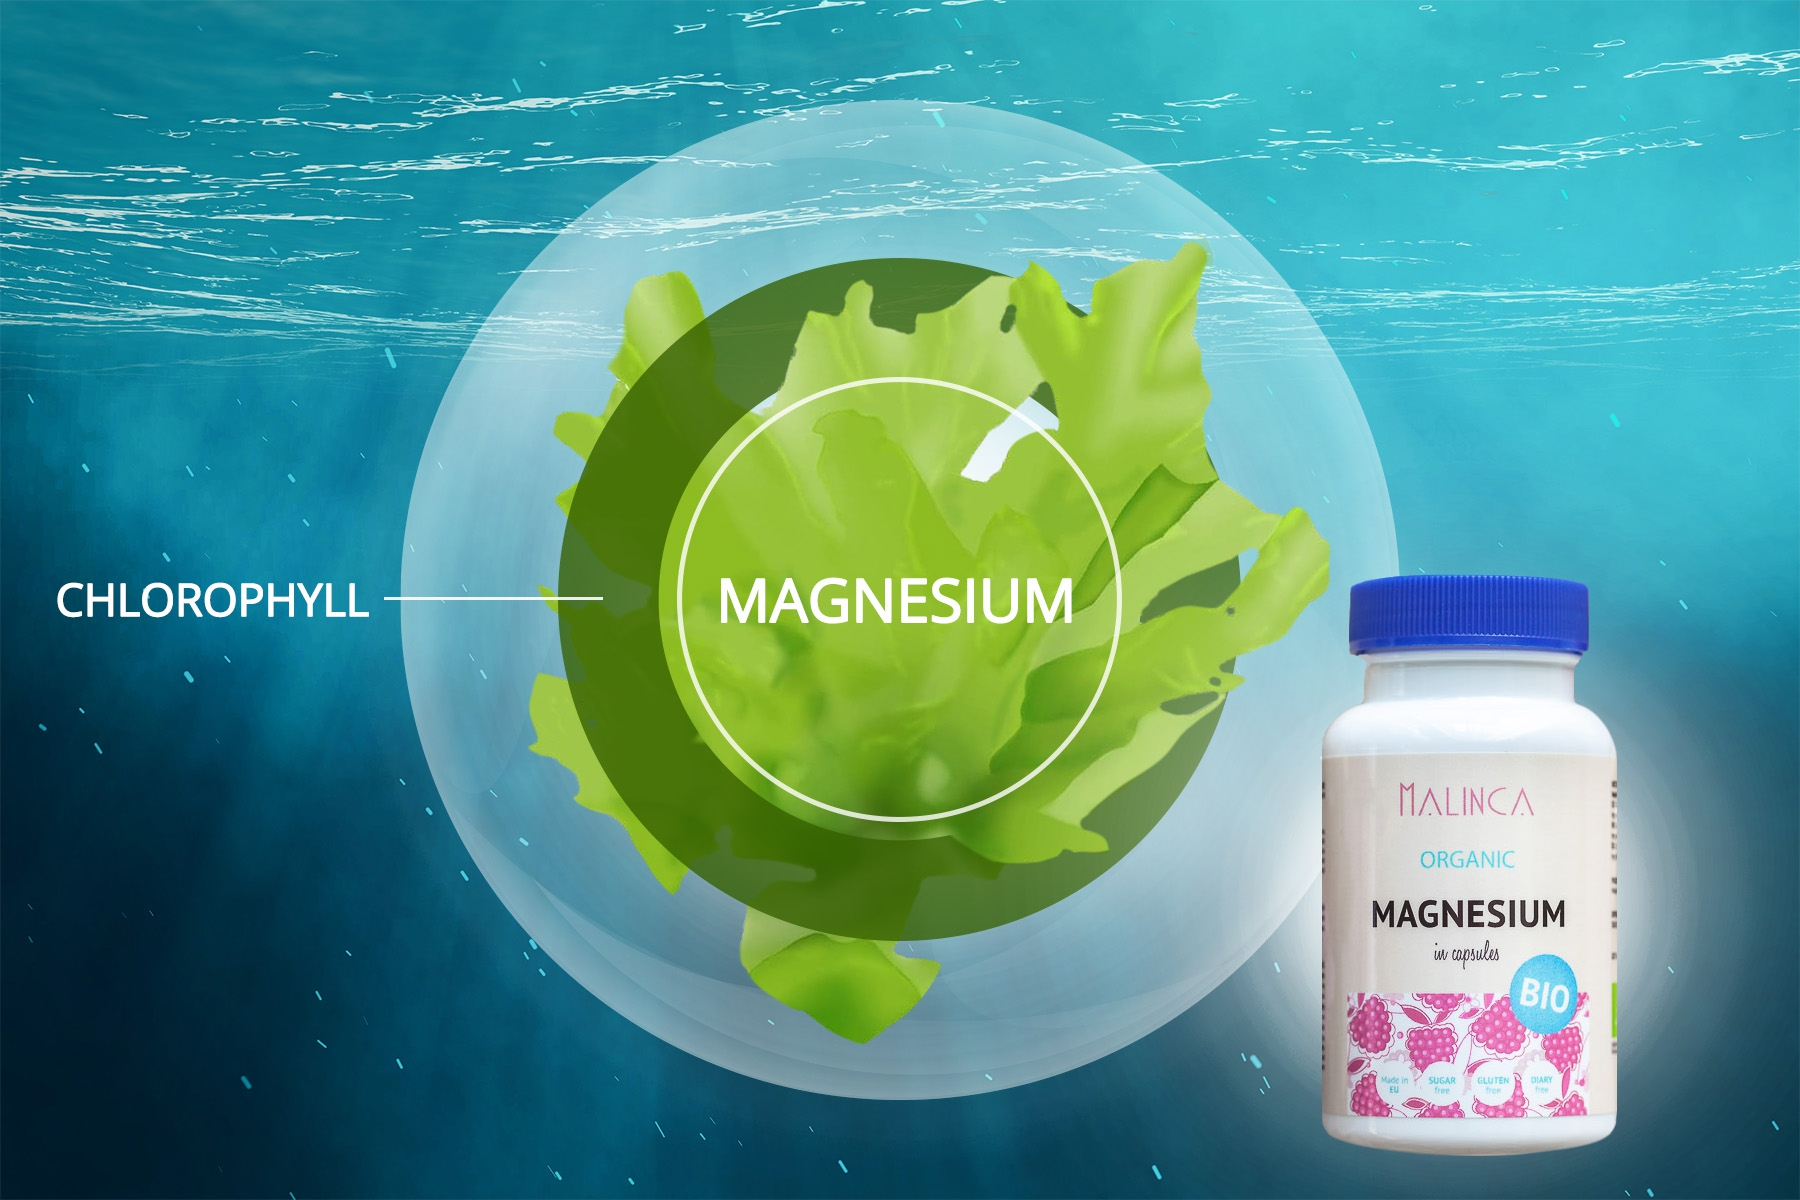 Magnesium in Chlorophyll